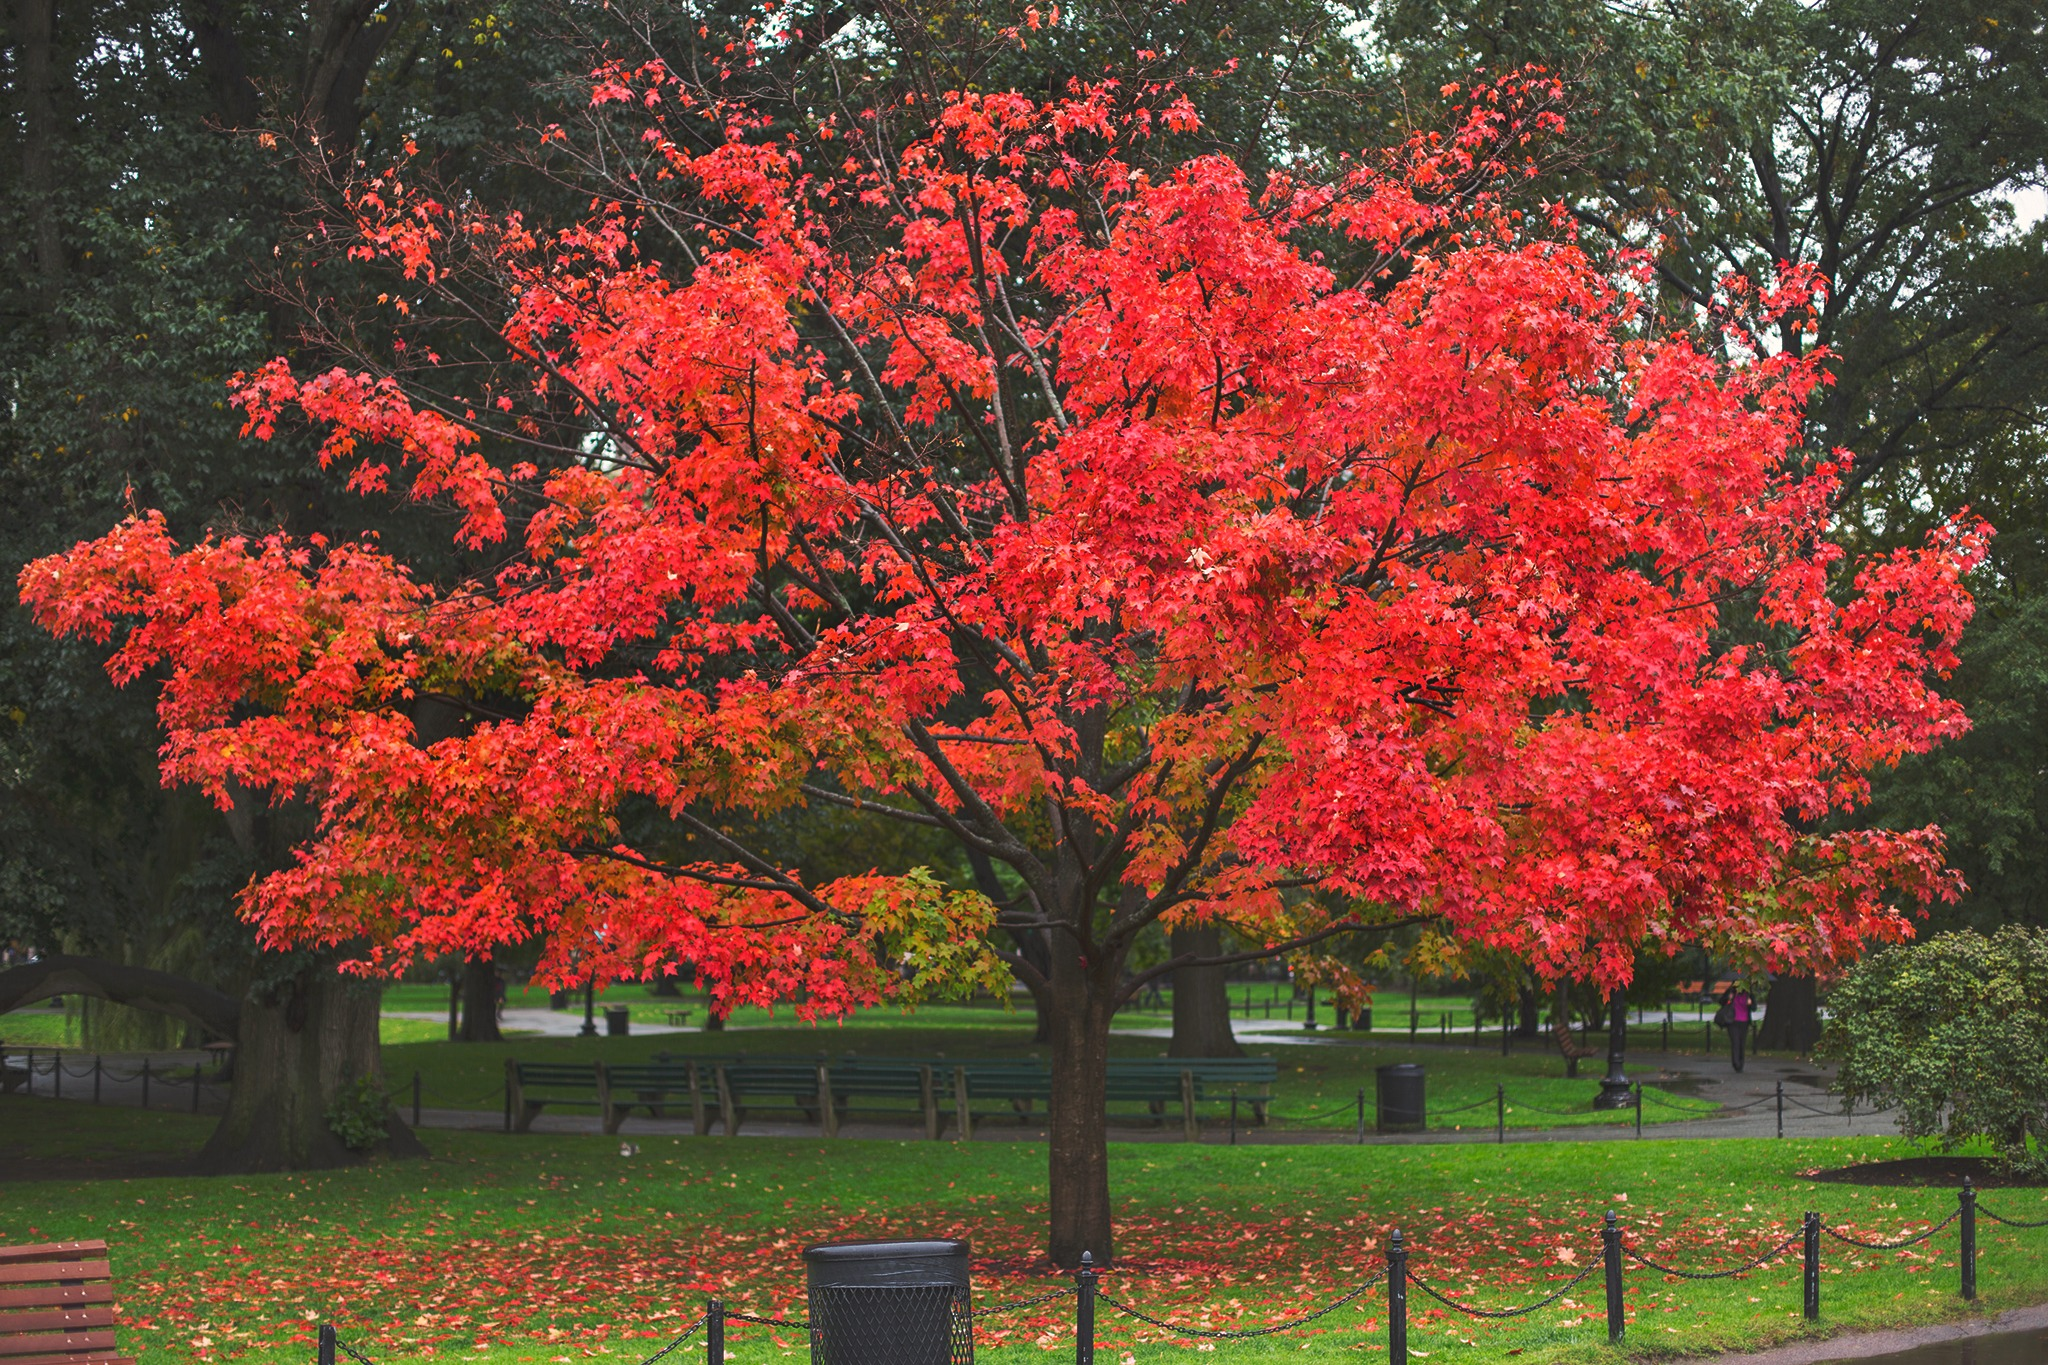 First Red Tree in Boston Public Garden